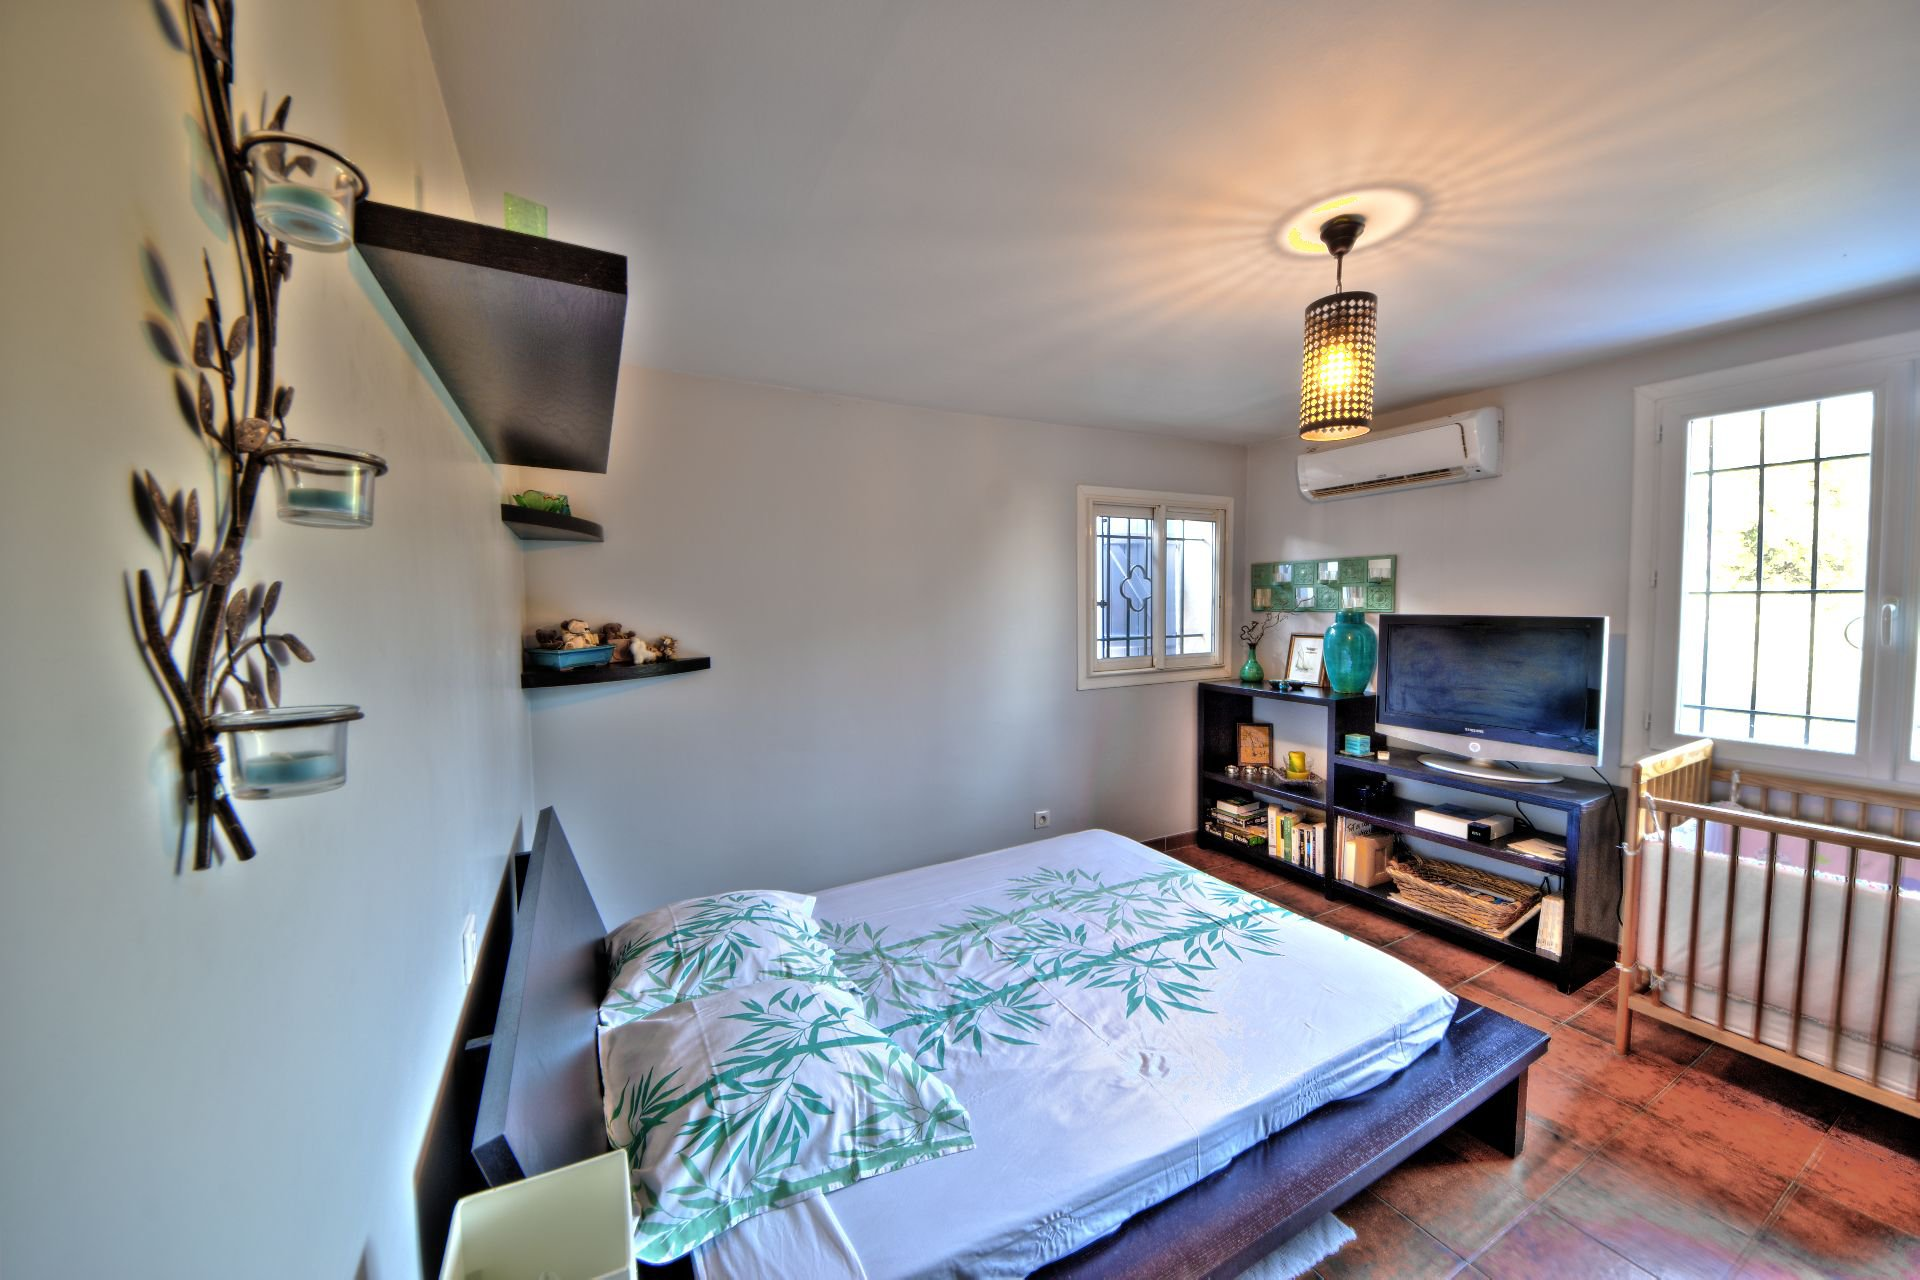 2 bedroom 1st floor living room 200 sqm, 4 bedrooms, outbuilding on 8000 m² agricultural area, Ampus, Var, Provence, Paca